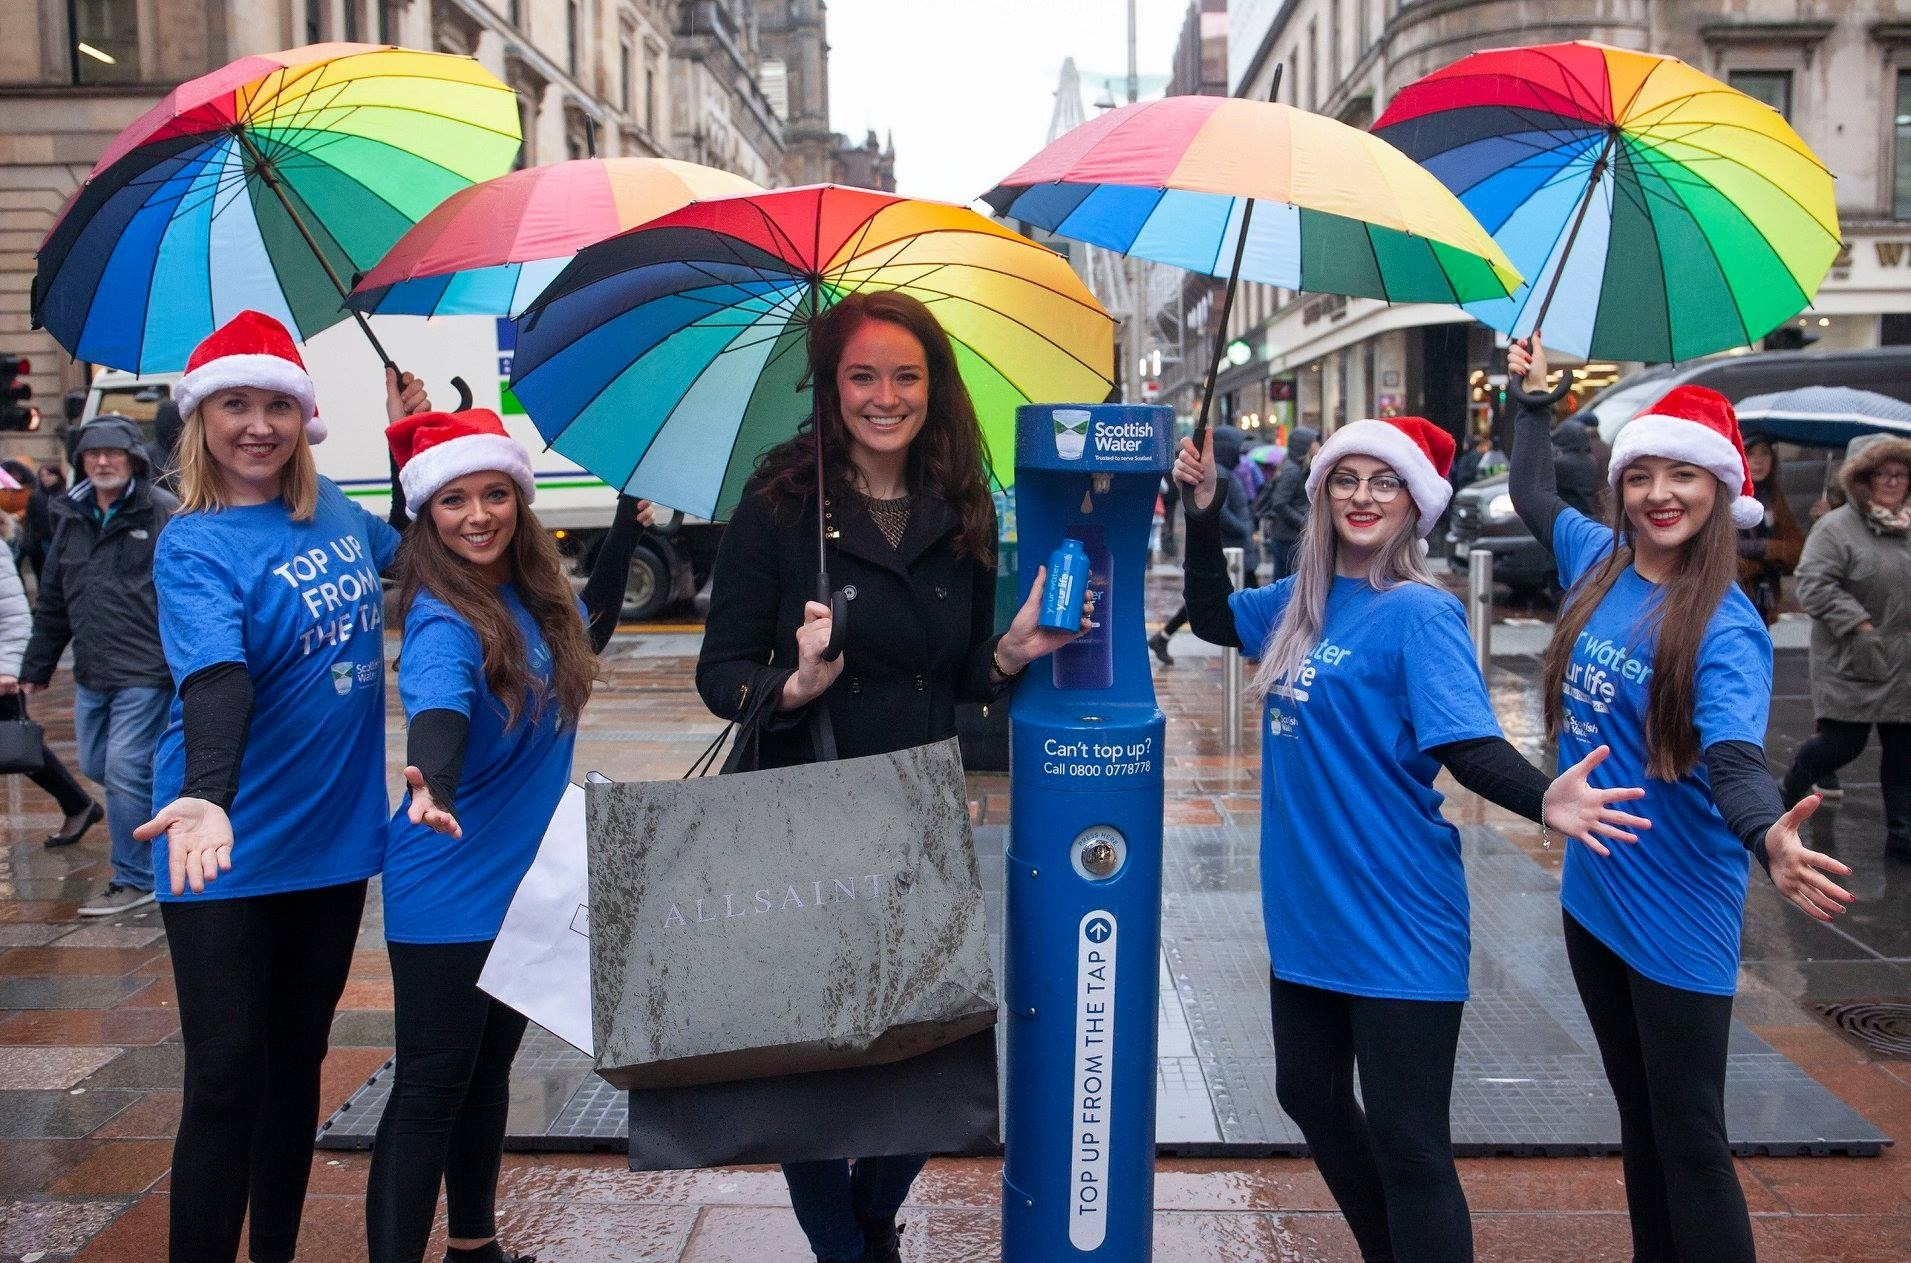 Scottish Water new outdoor refill station by MIW